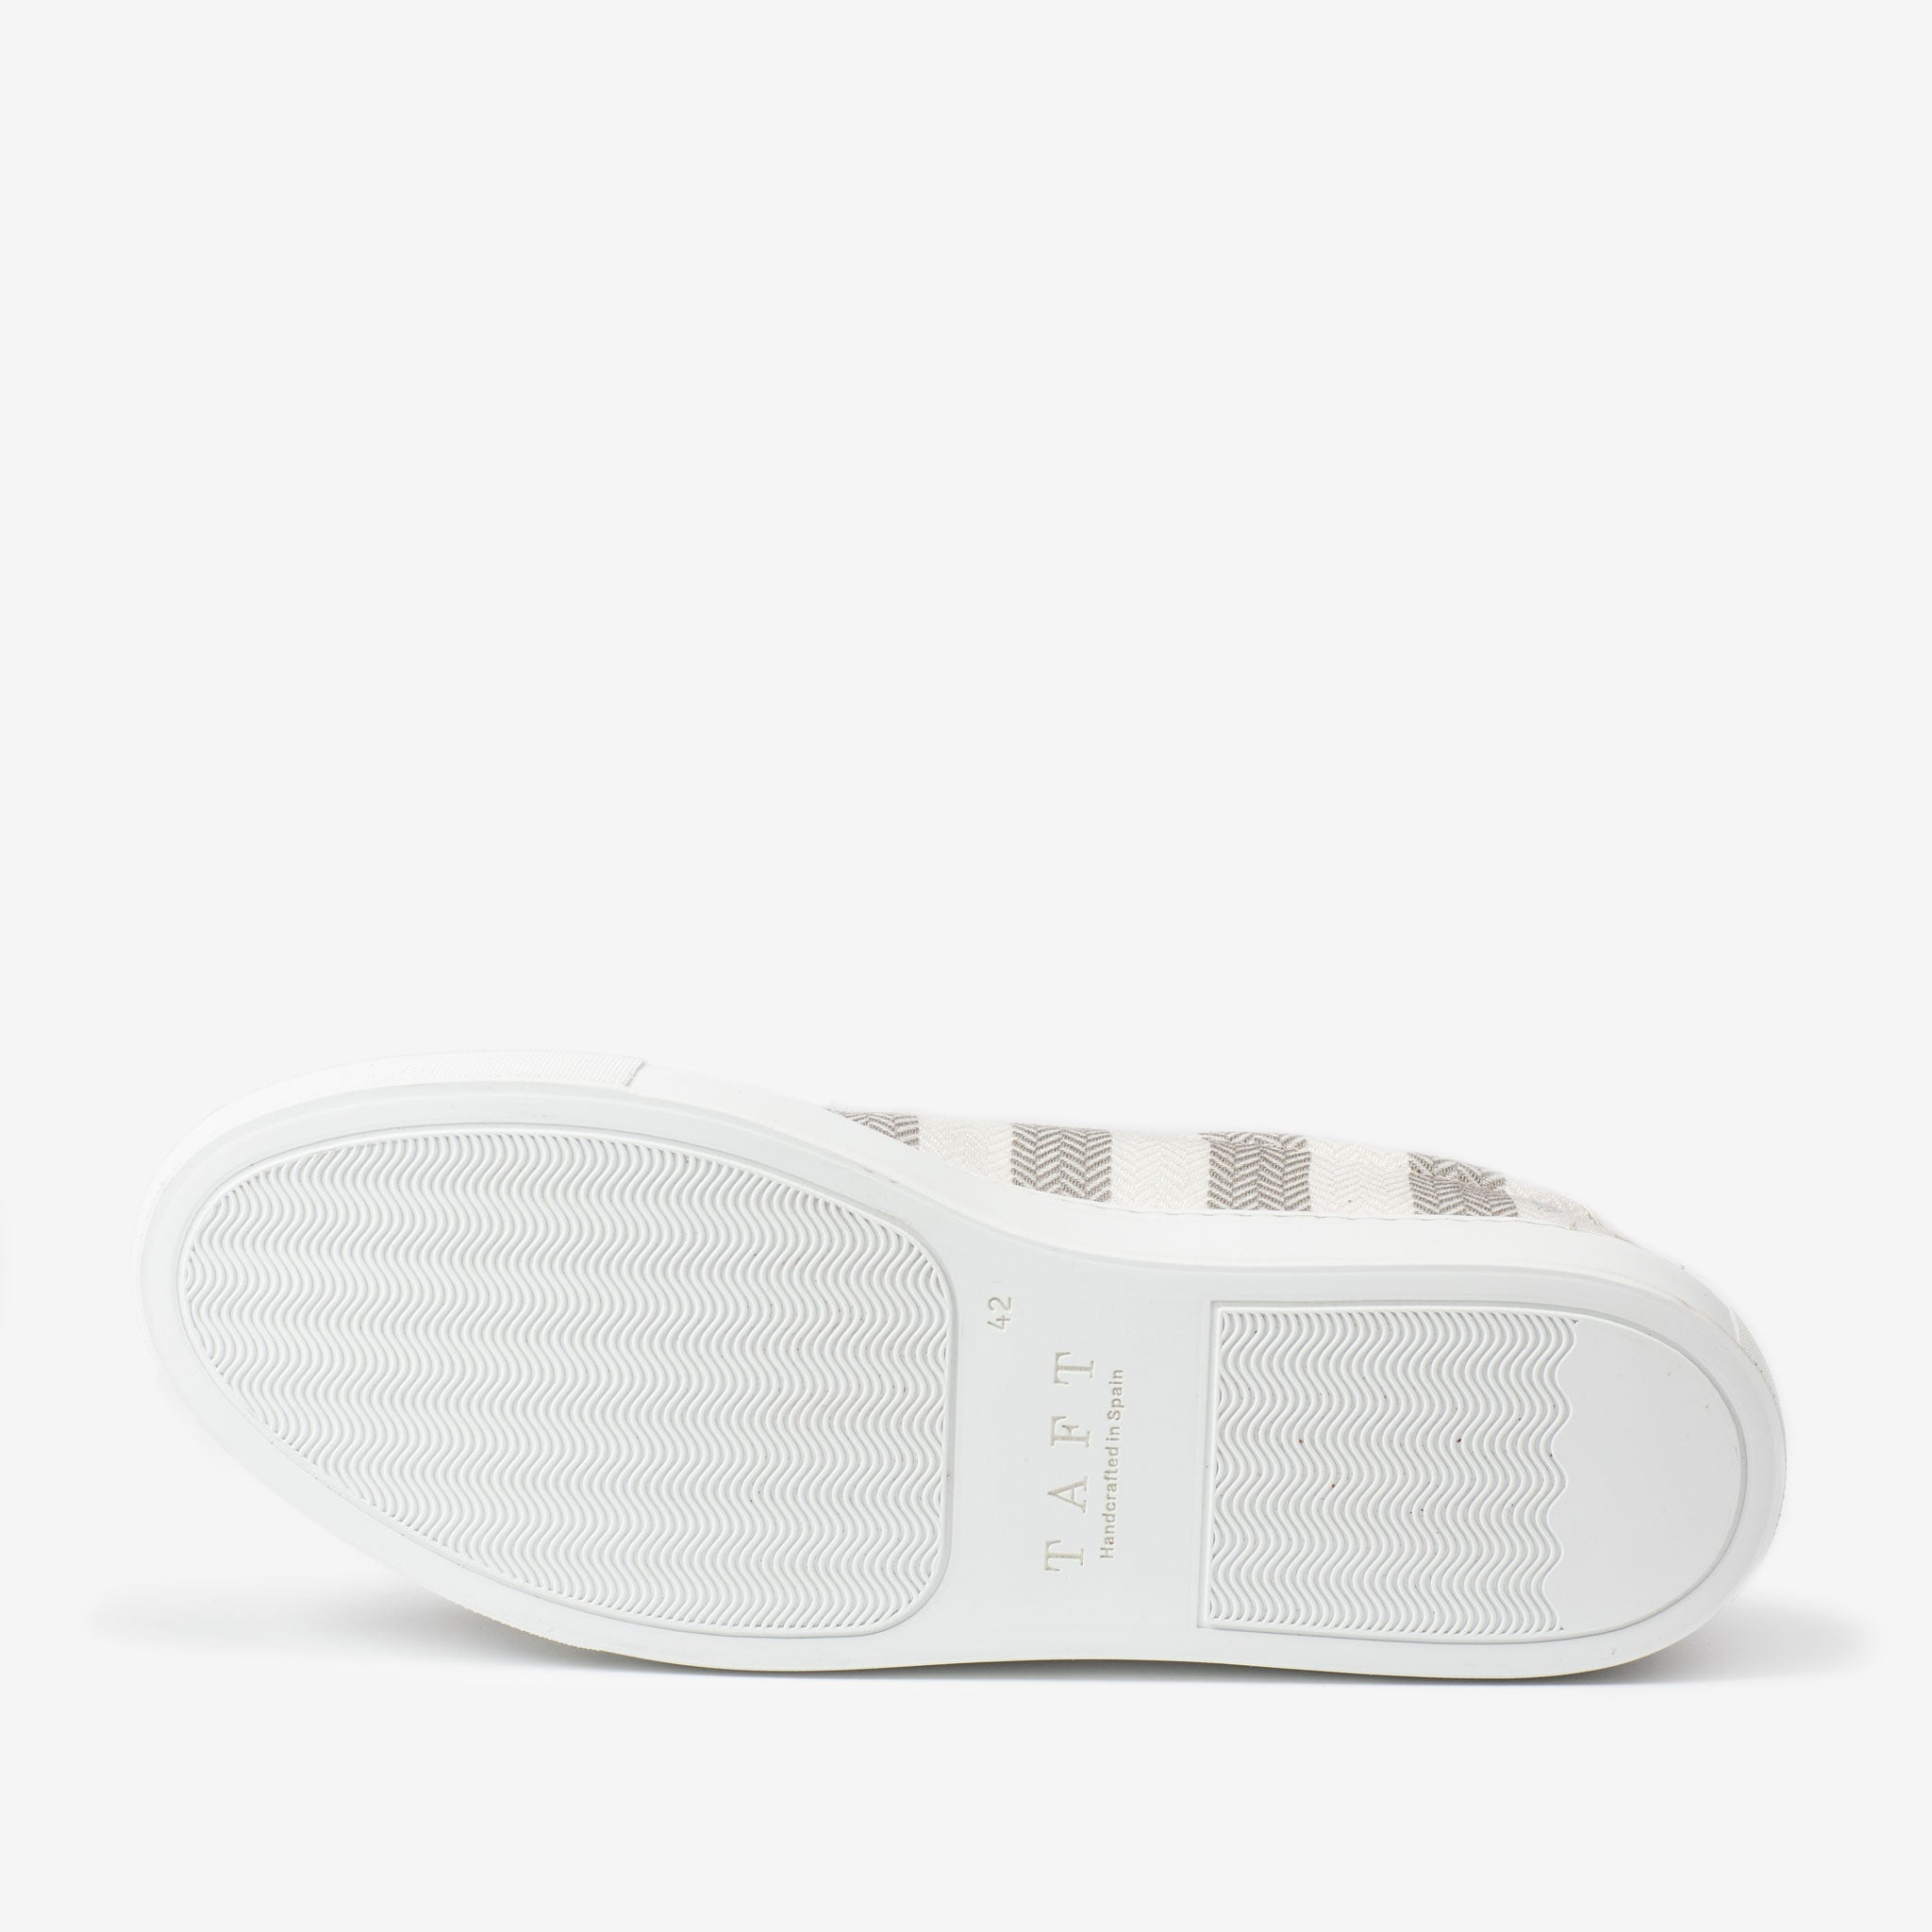 The Sneaker in Grey Stripes Sole